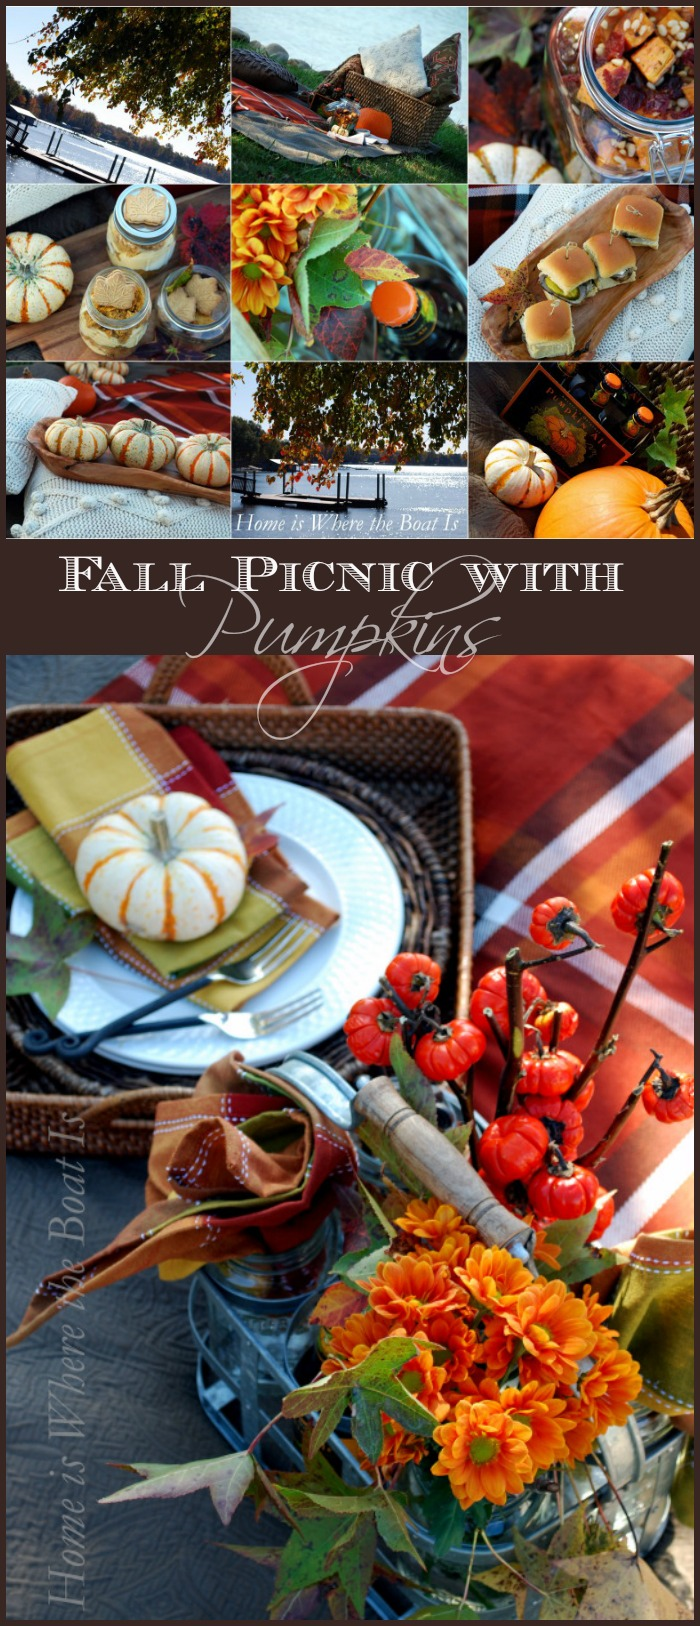 Fall Picnic with Pumpkins